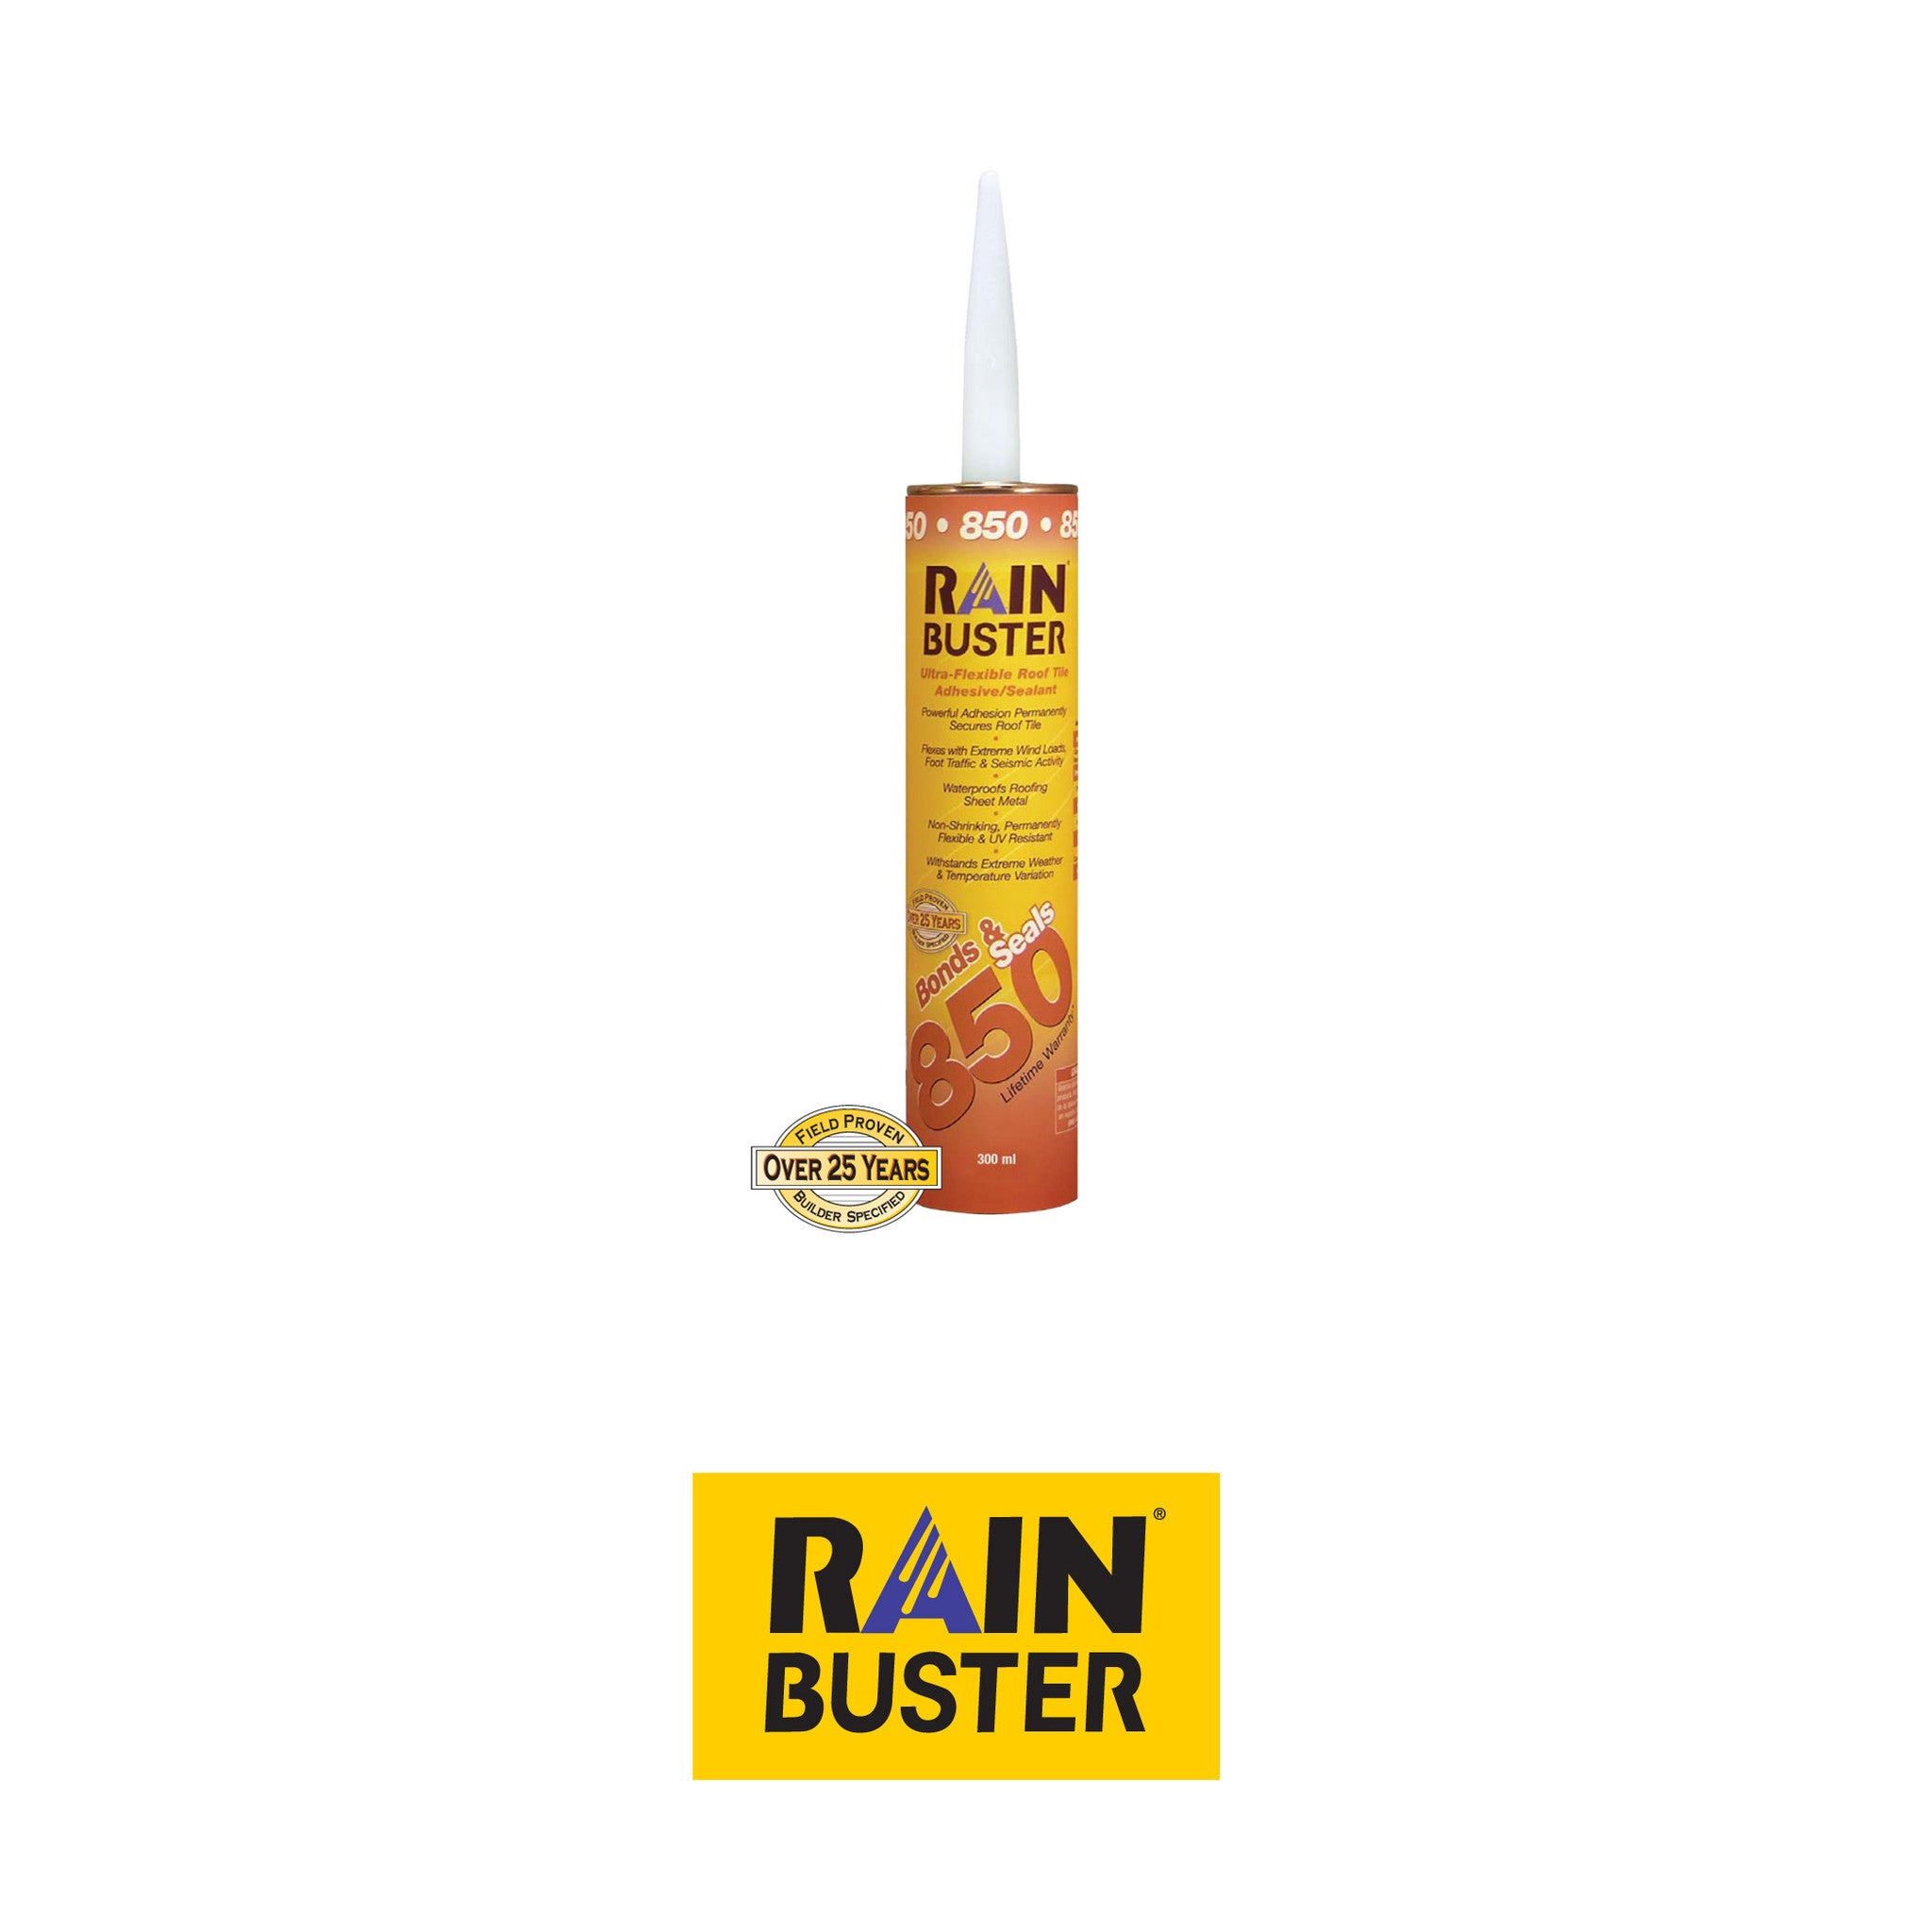 rainbuster 850 roof adhesive sealant more colors available